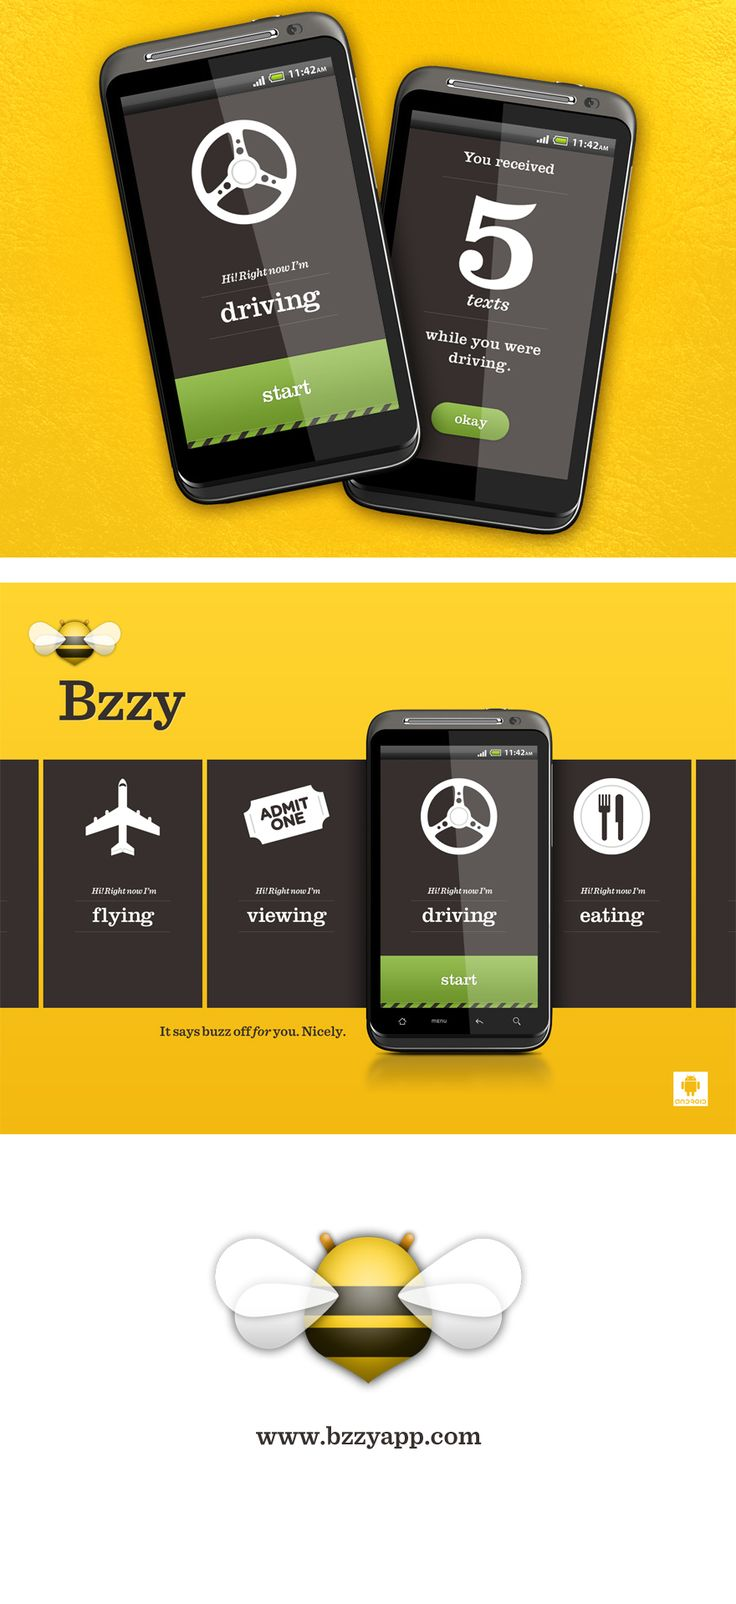 Bzzy is a simple, fast, text-message autoreply app for Android. It tells your friends that you're busy; that you're driving, eating, flying - or anything else. Bzzy focuses on turning something that can be more of an obligation into something fun and easy to do; turning off your texting so you can focus on more important things... like driving safely. So, tell your friends to buzz off. But in a nice way.